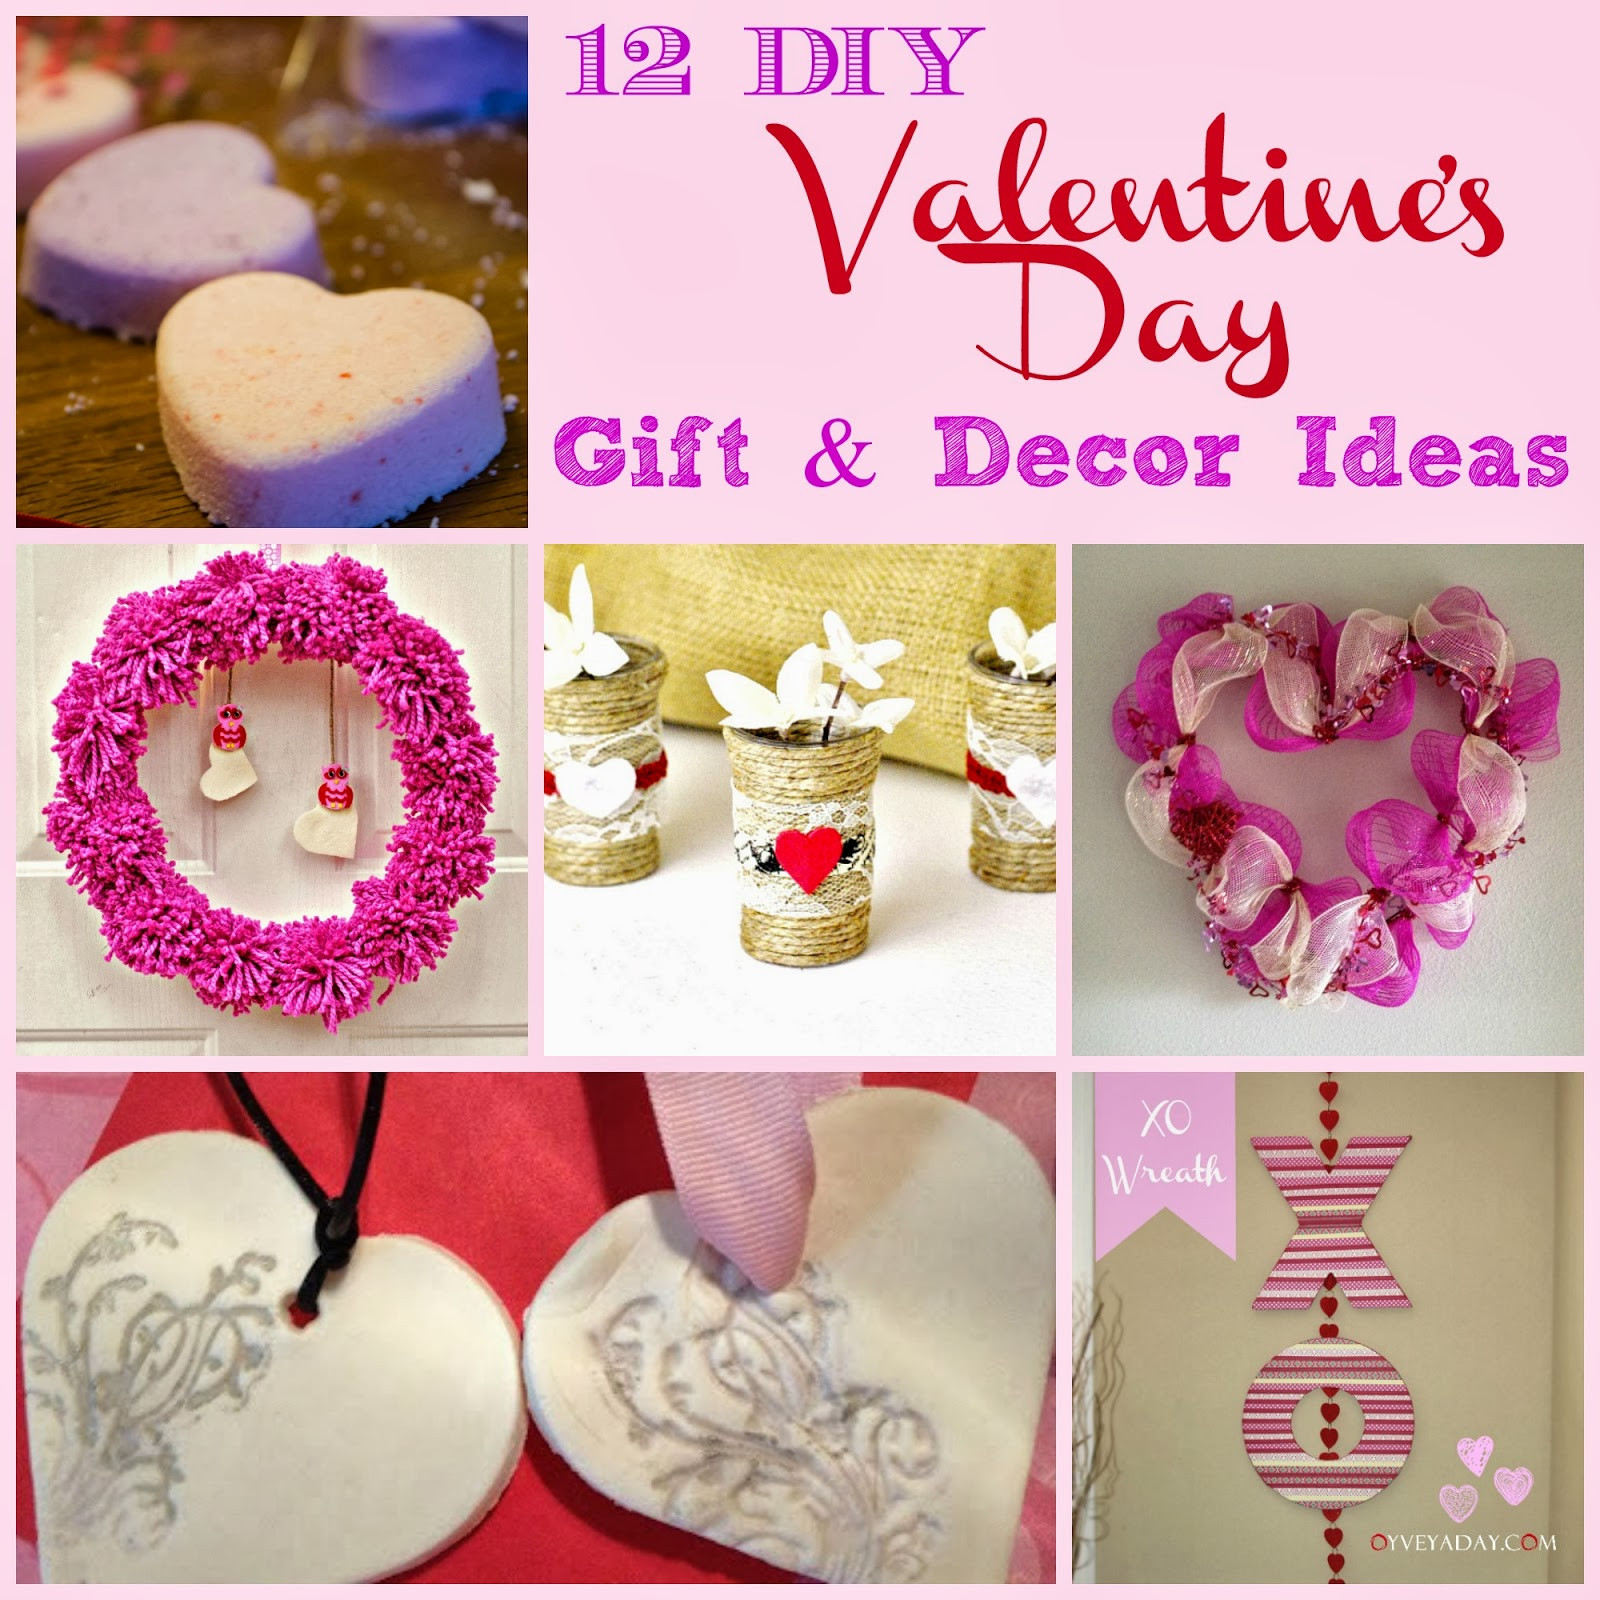 Valentine Day Homemade Gift Ideas  12 DIY Valentine s Day Gift & Decor Ideas Outnumbered 3 to 1